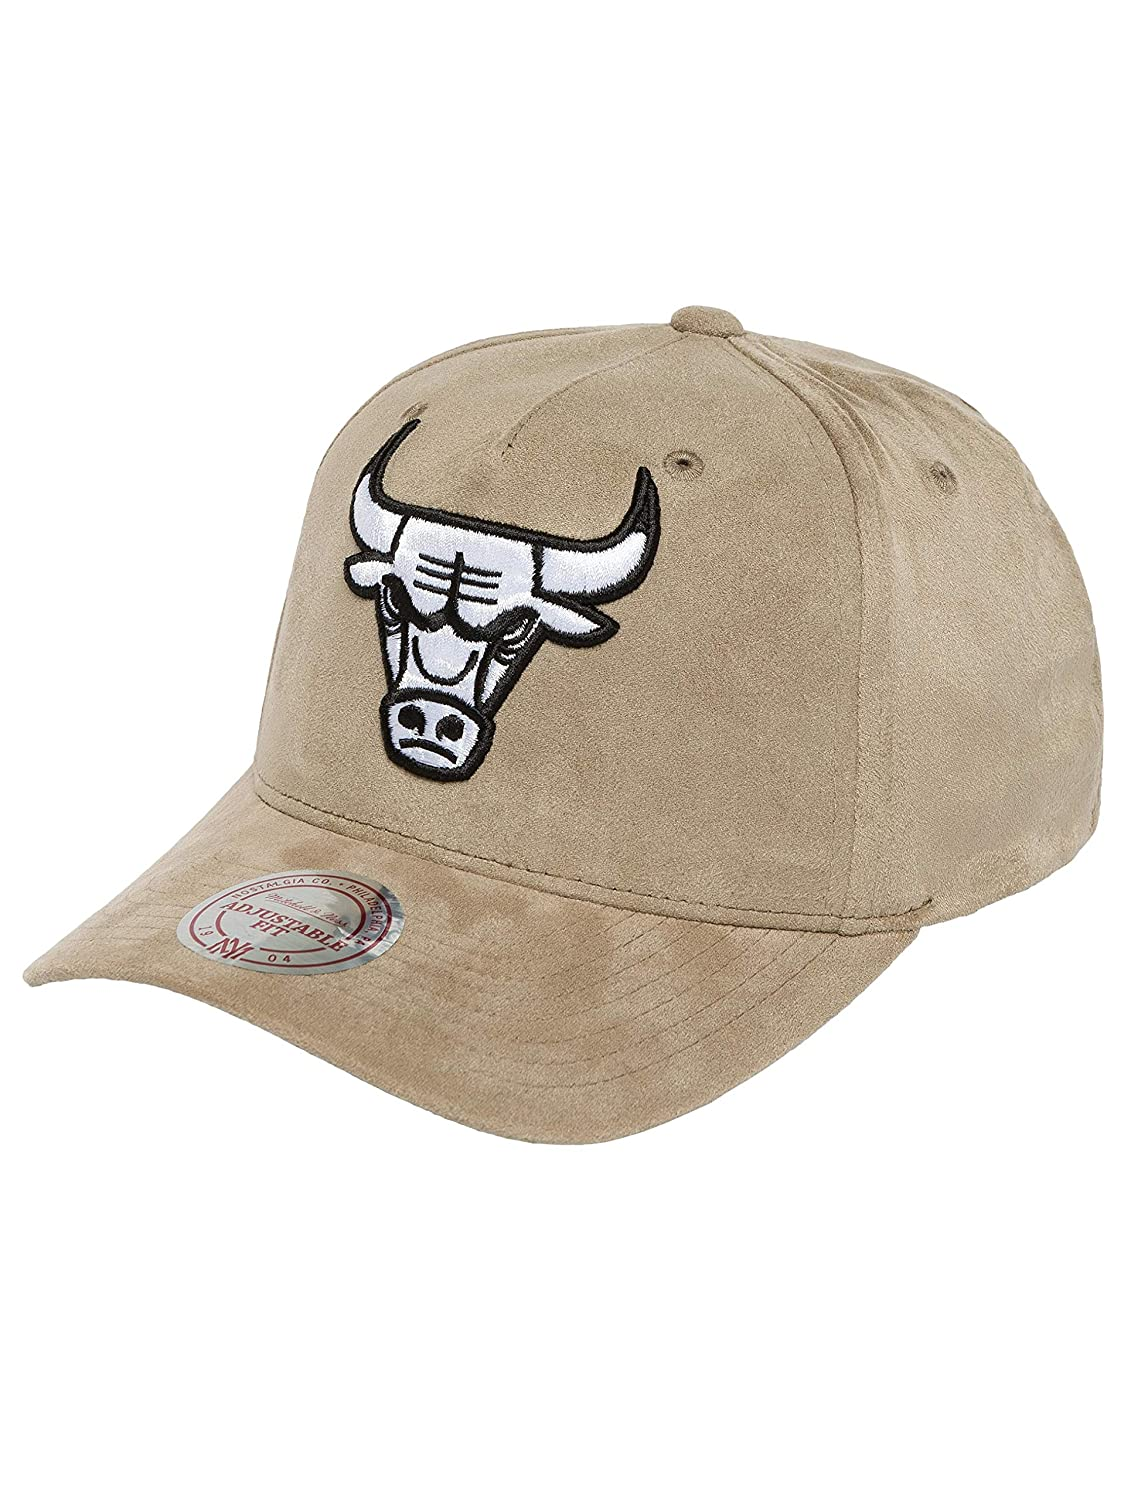 c997f55a181 Mitchell   Ness Men Caps Snapback Cap 110 Curved NBA Chicago Bulls Suede  Grey Adjustable  Amazon.co.uk  Clothing